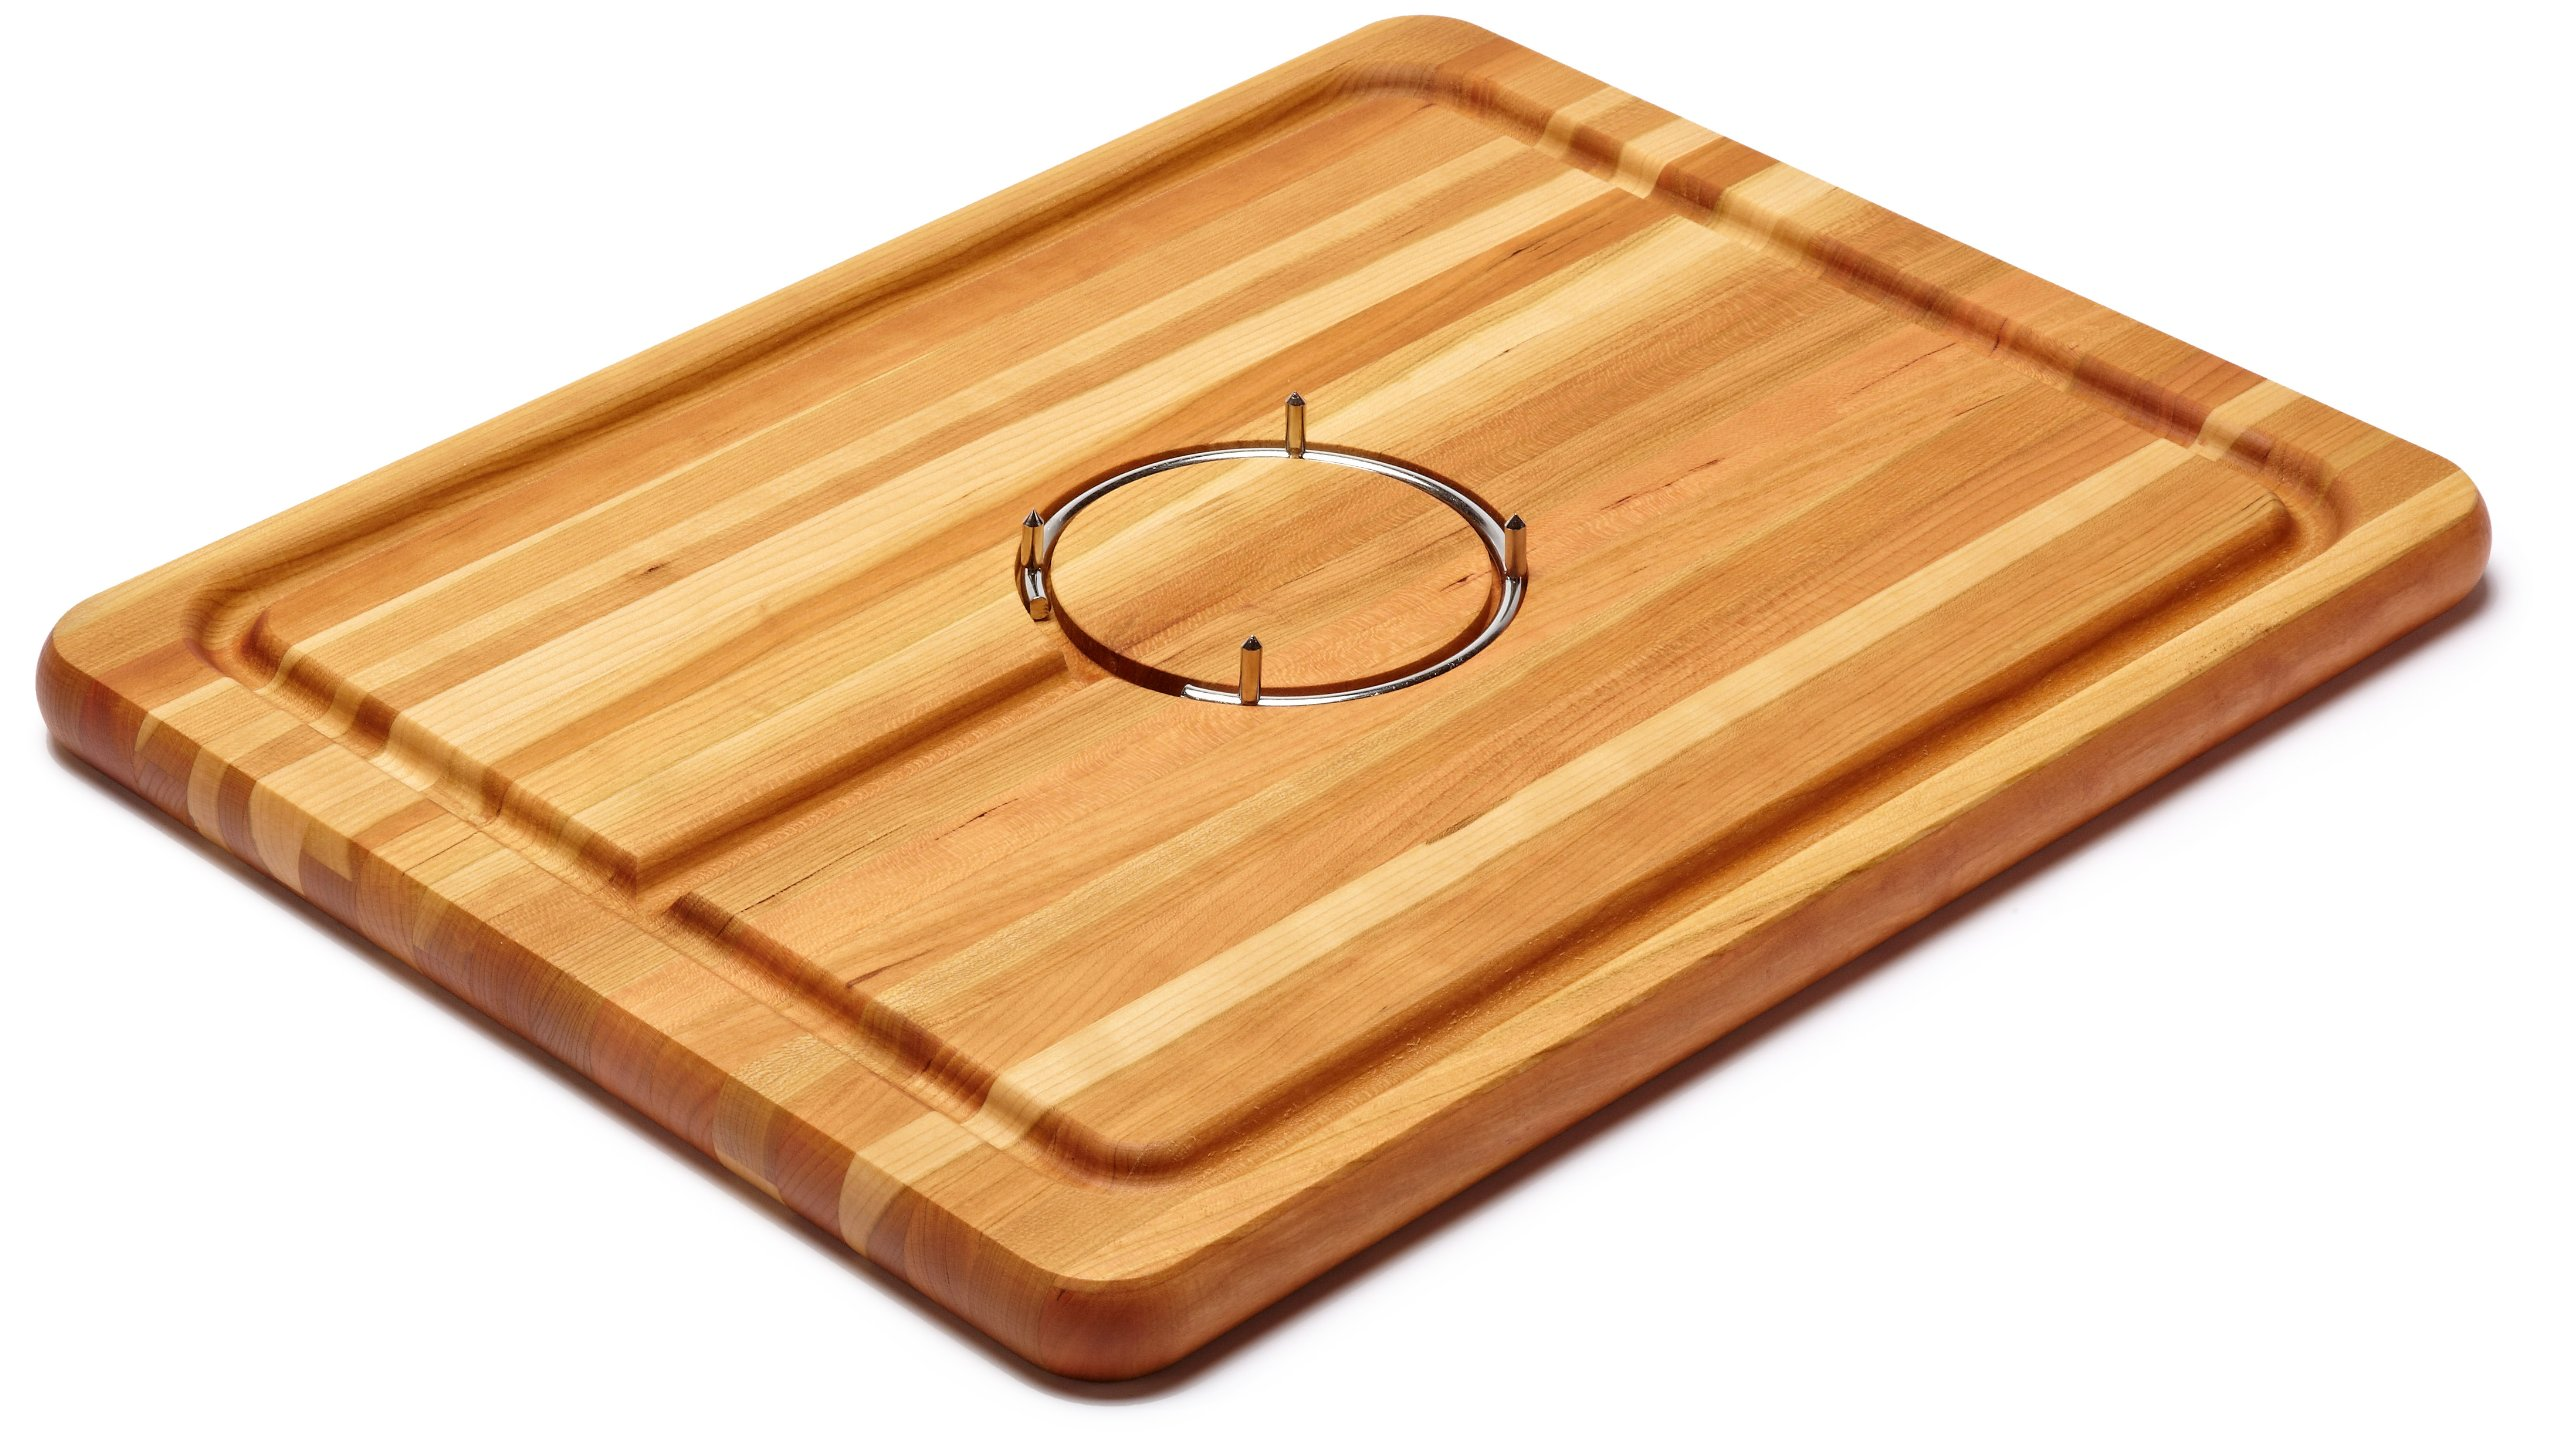 Snow River USA 7V03084 Hardwood Cherry Carving Board with Stainless Steel Gripping Ring and Juice Well, 14'' x 18'' x 1''